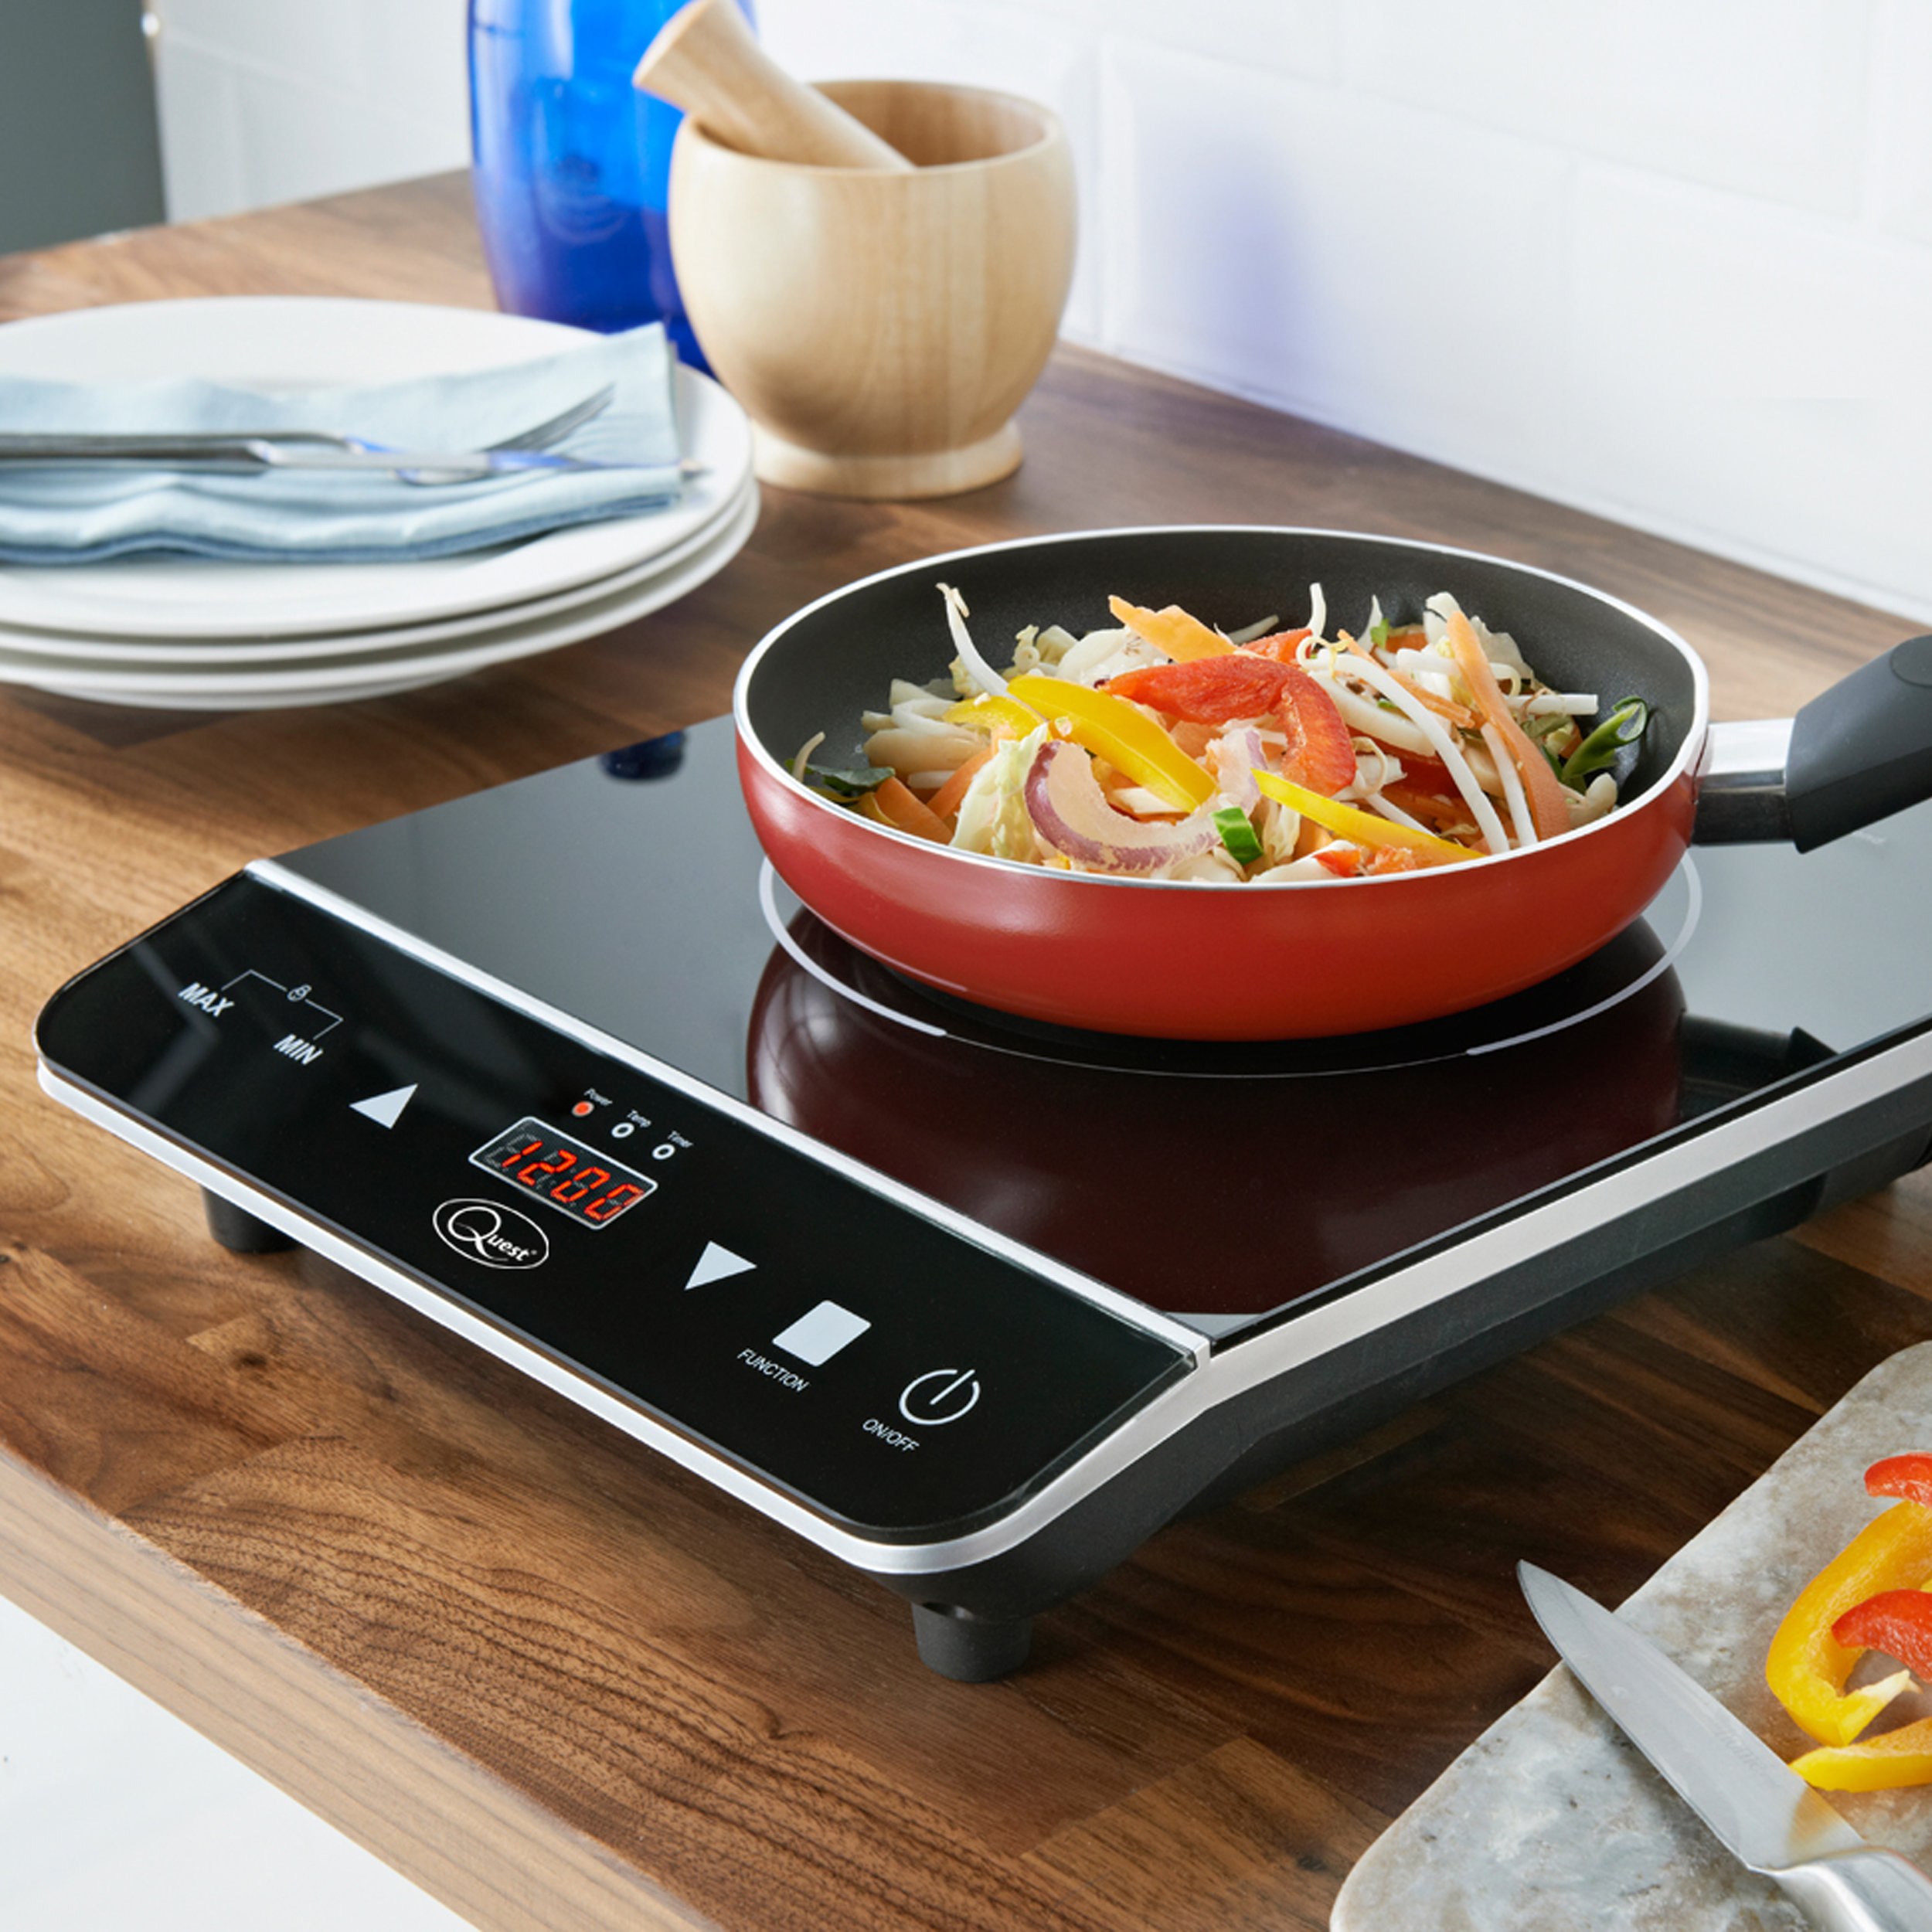 Single Digital Induction Hob cooking vegetables